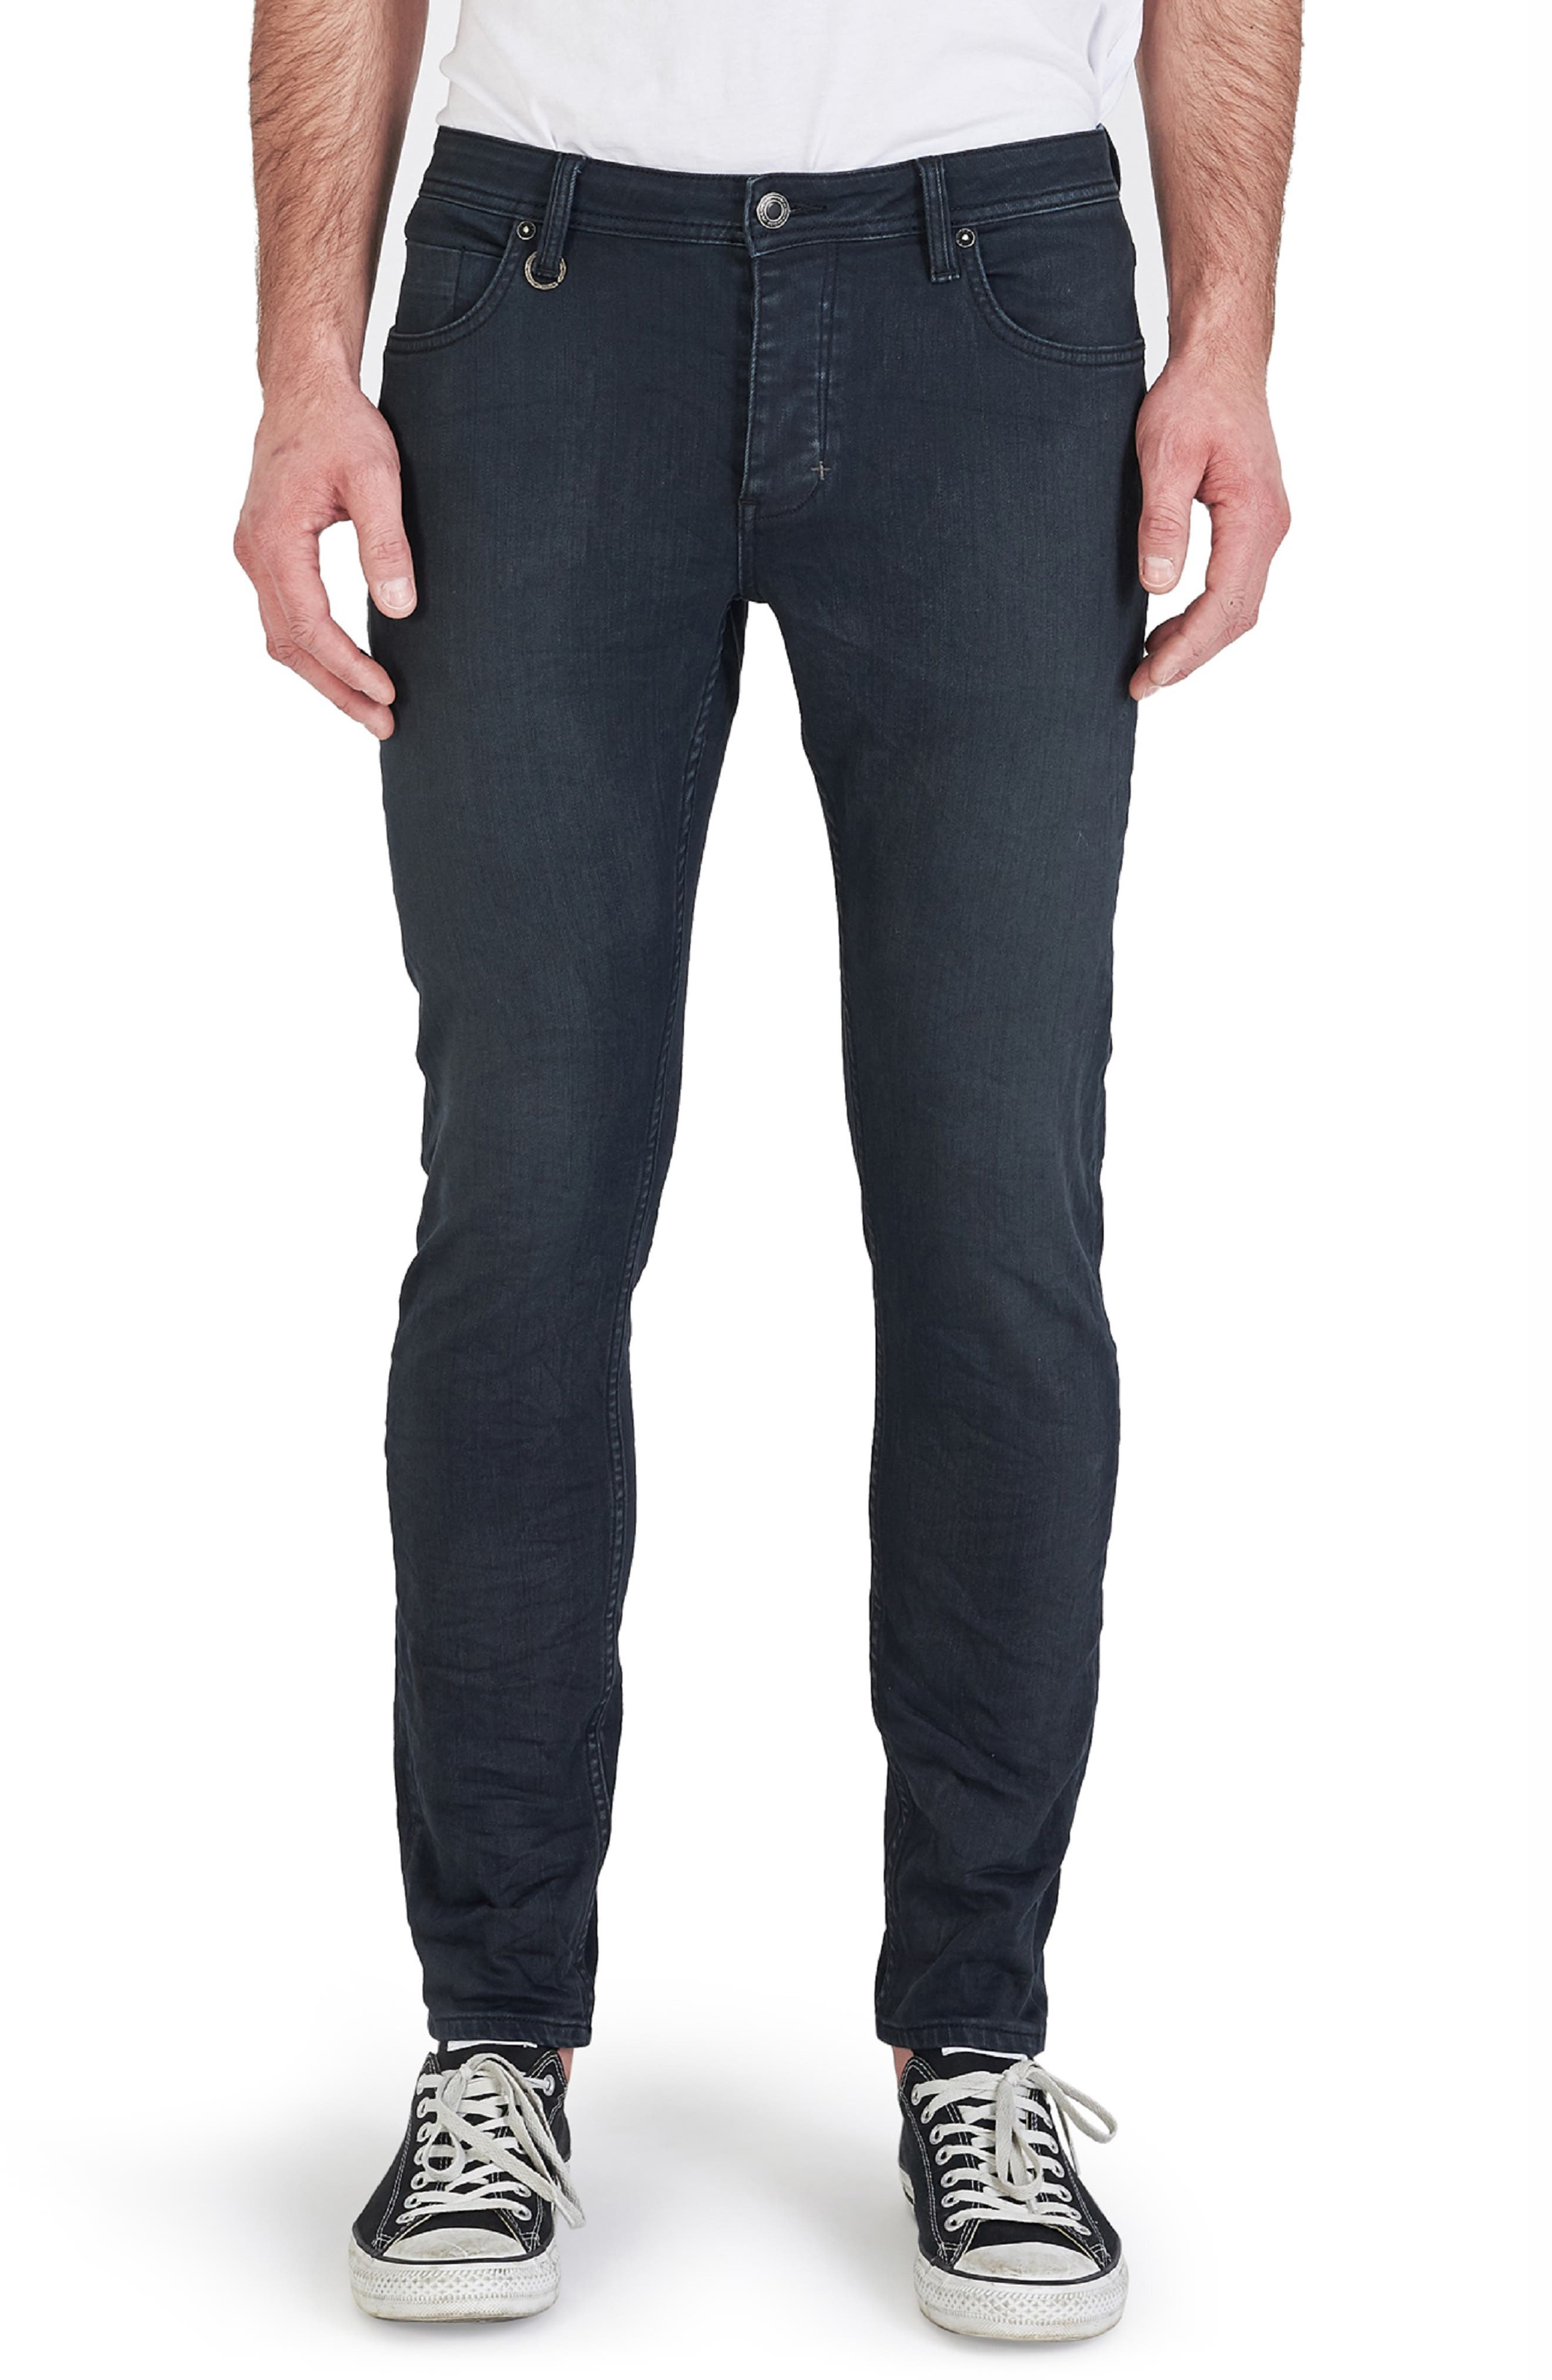 Iggy Skinny Fit Jeans,                         Main,                         color, DUST